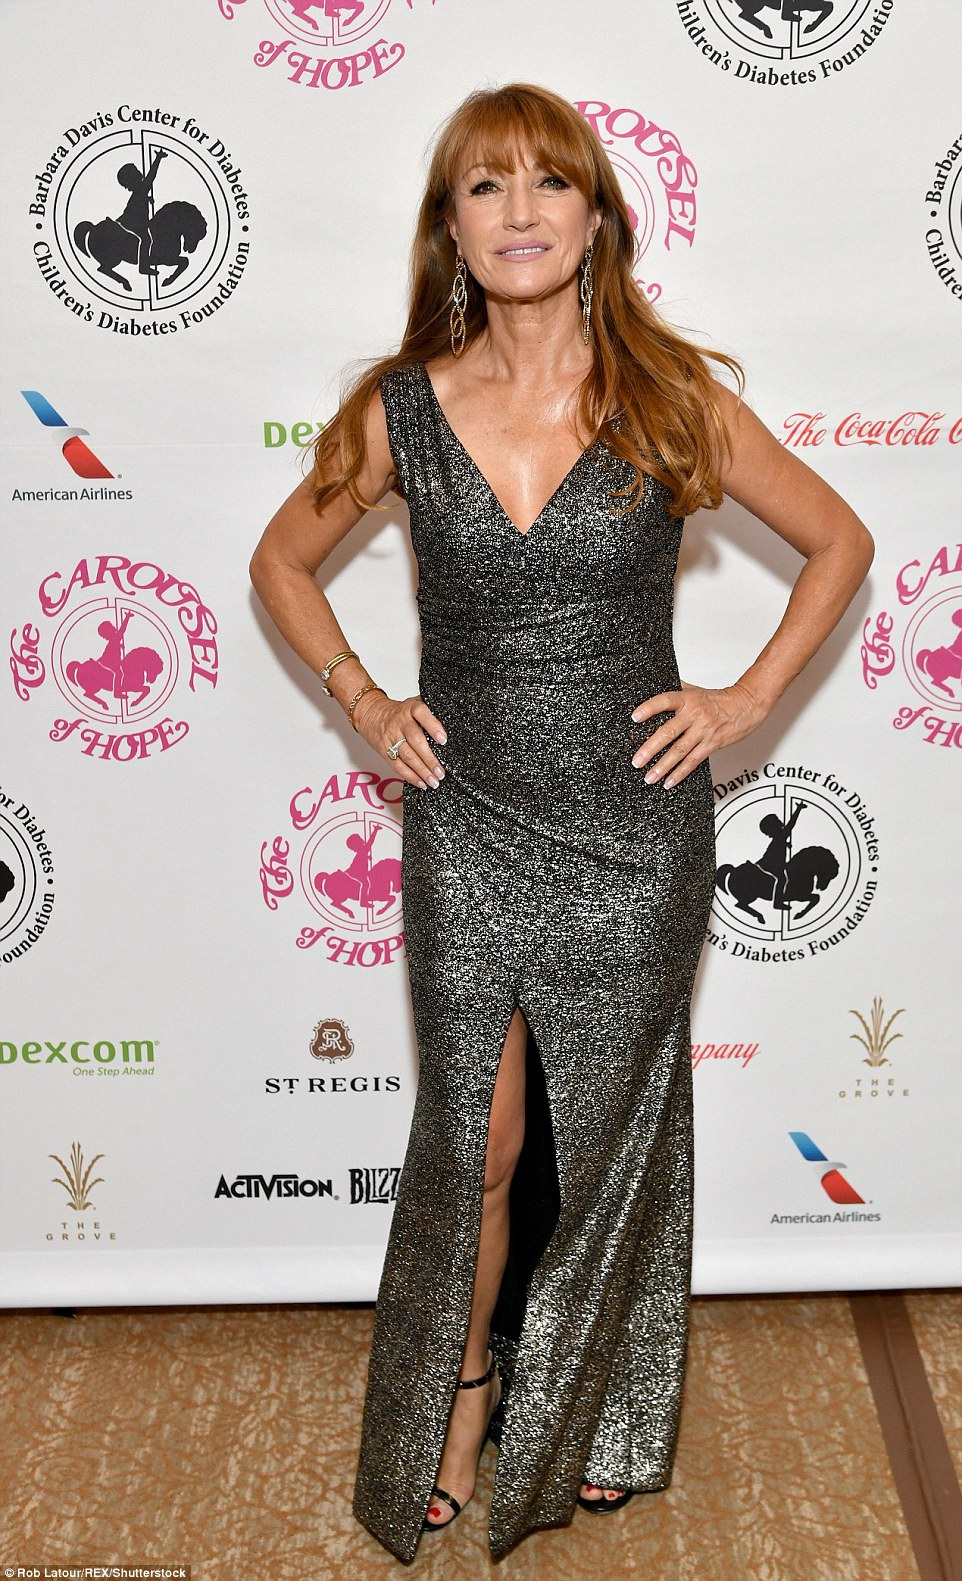 A dazzling host of A-List beauties of a certain vintage turned out for a Hollywood charity gala on Saturday night, including 65-year-old Bond Girl, Jane Seymour, so which golden girl is ageing best?